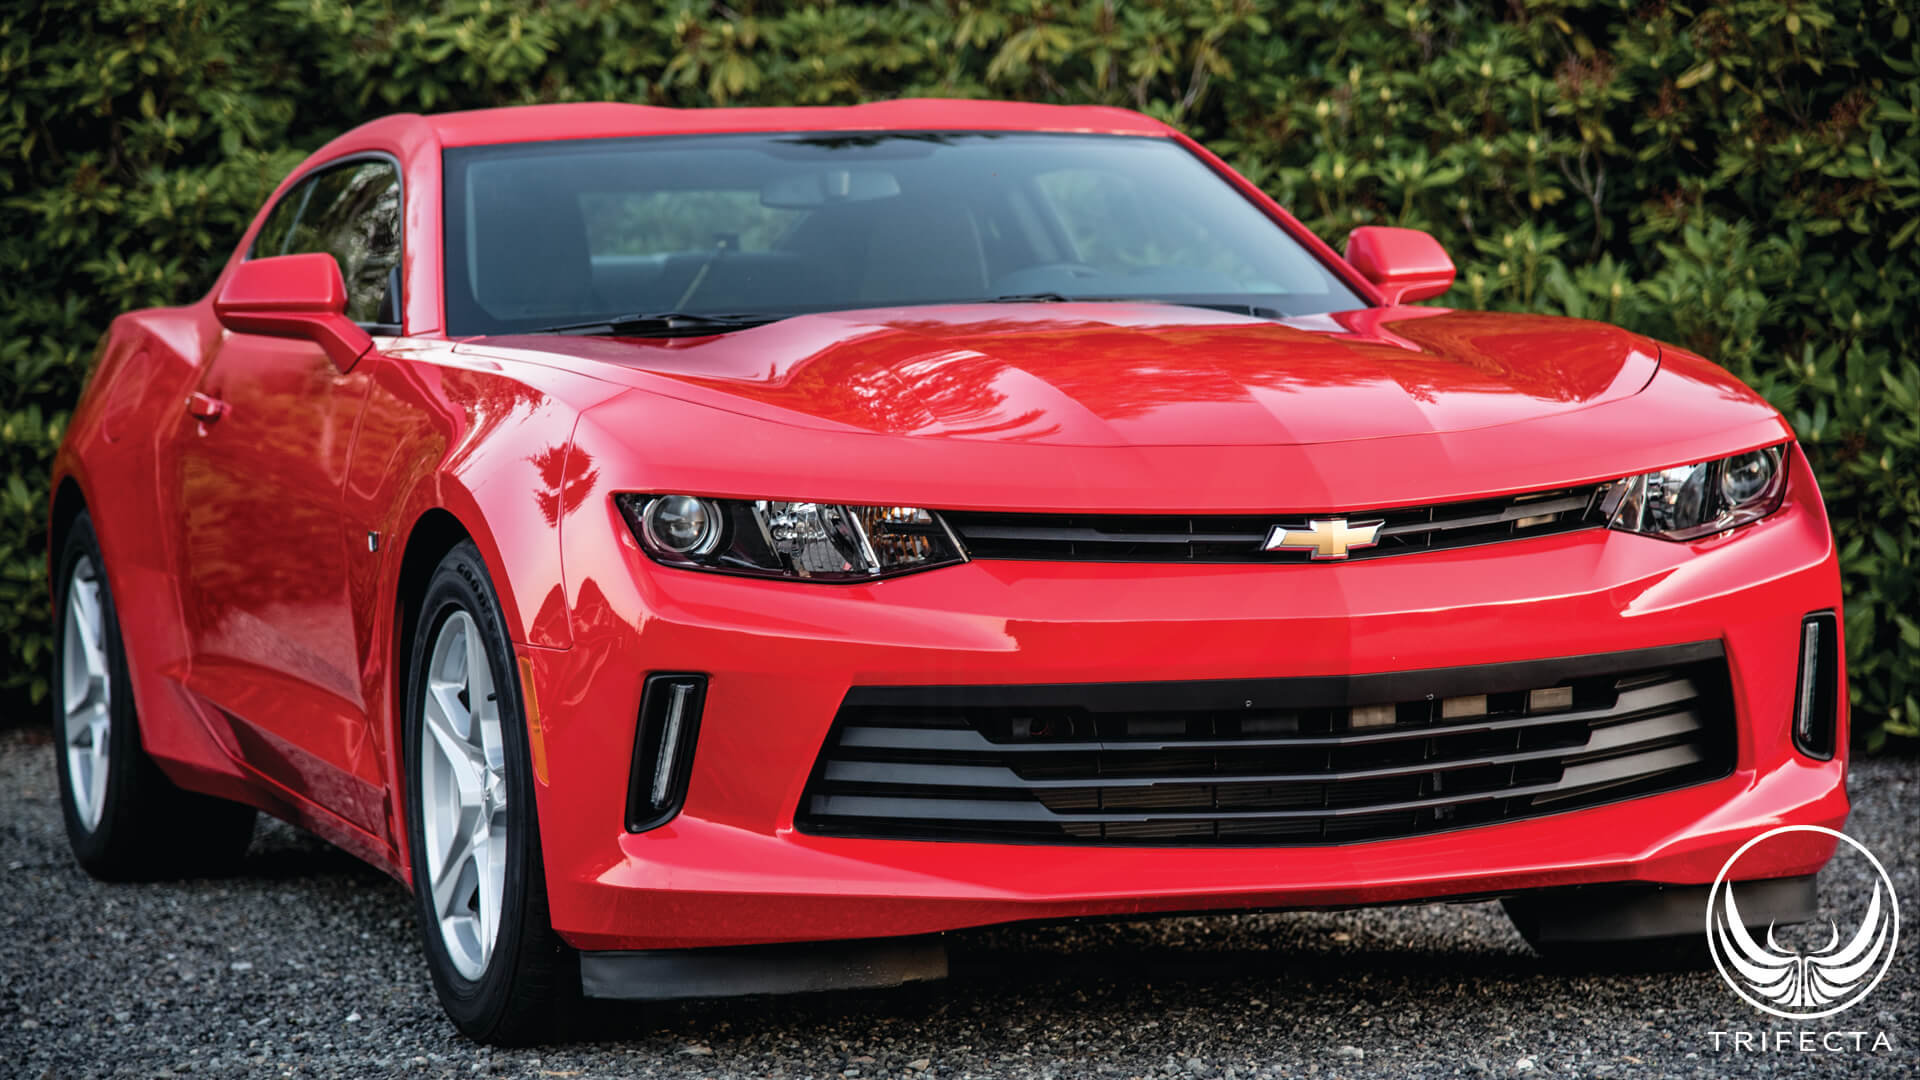 Product Review: 2016--2018 Chevrolet Camaro - 3.6L - Advantage+